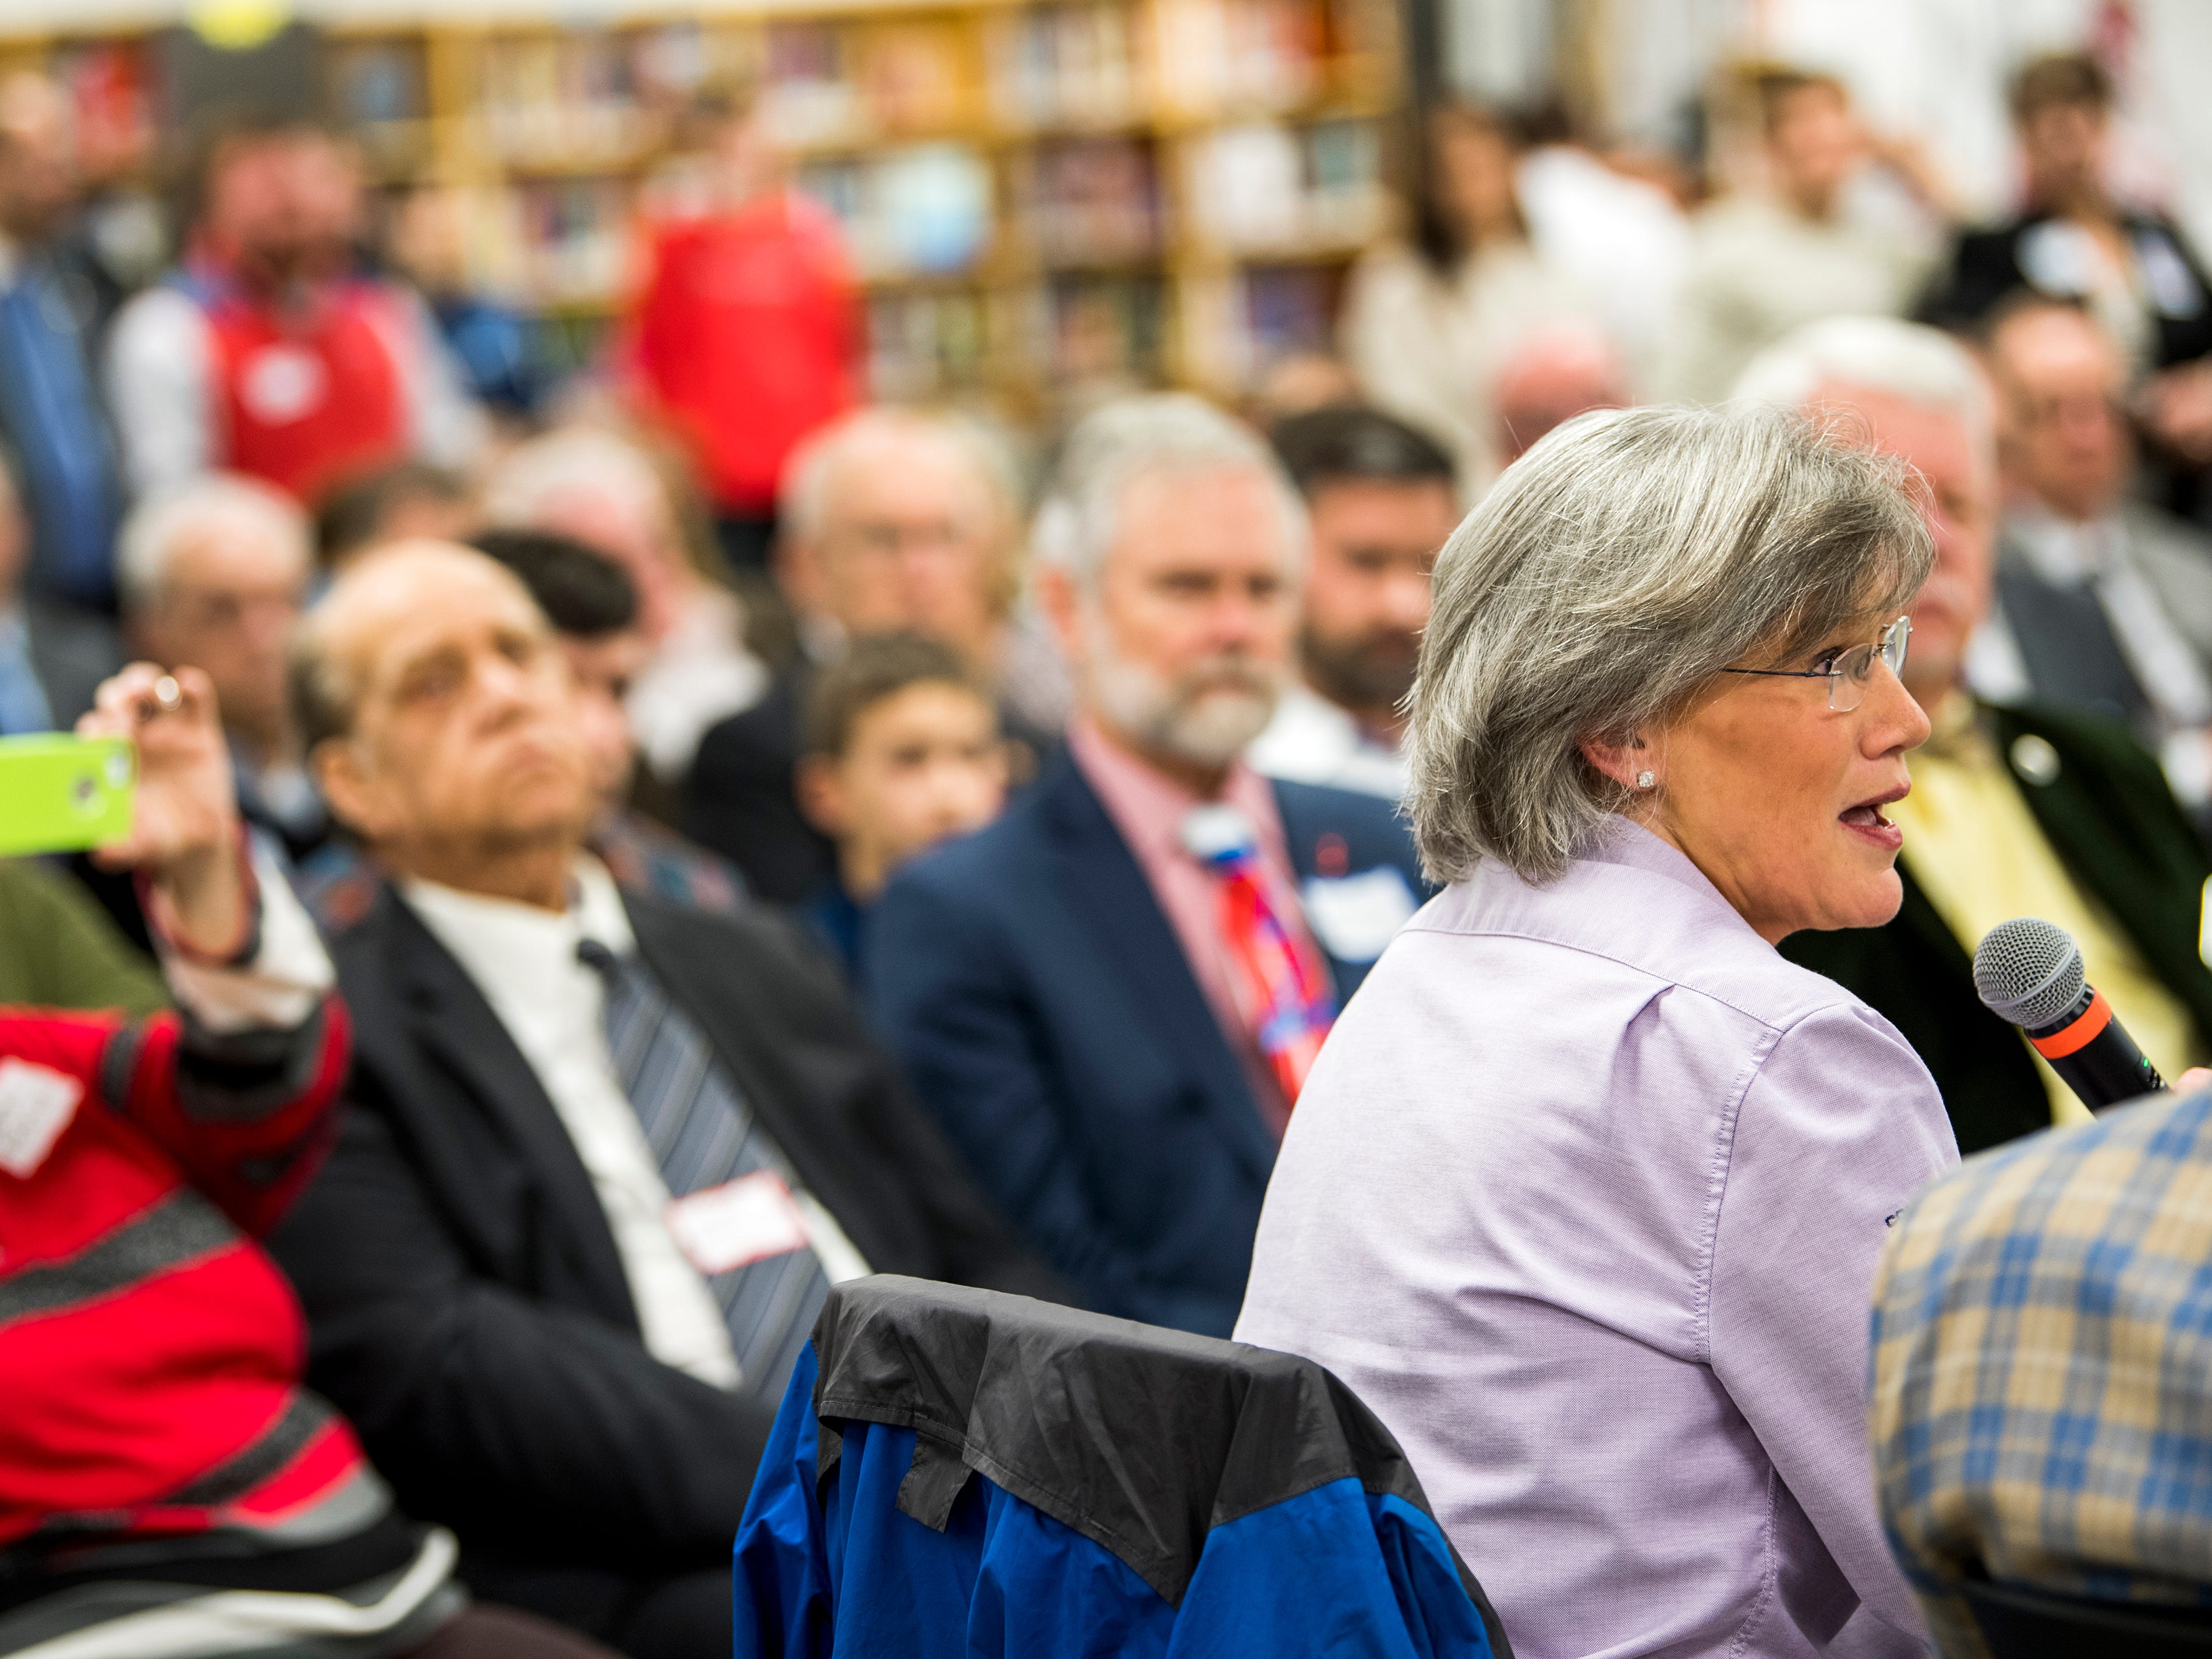 Shoffner Kalhoffat's Kathy Crookshanks, bottom right, asks a question during a roundtable event at South-Doyle High in South Knoxville on Friday, February 15, 2019.